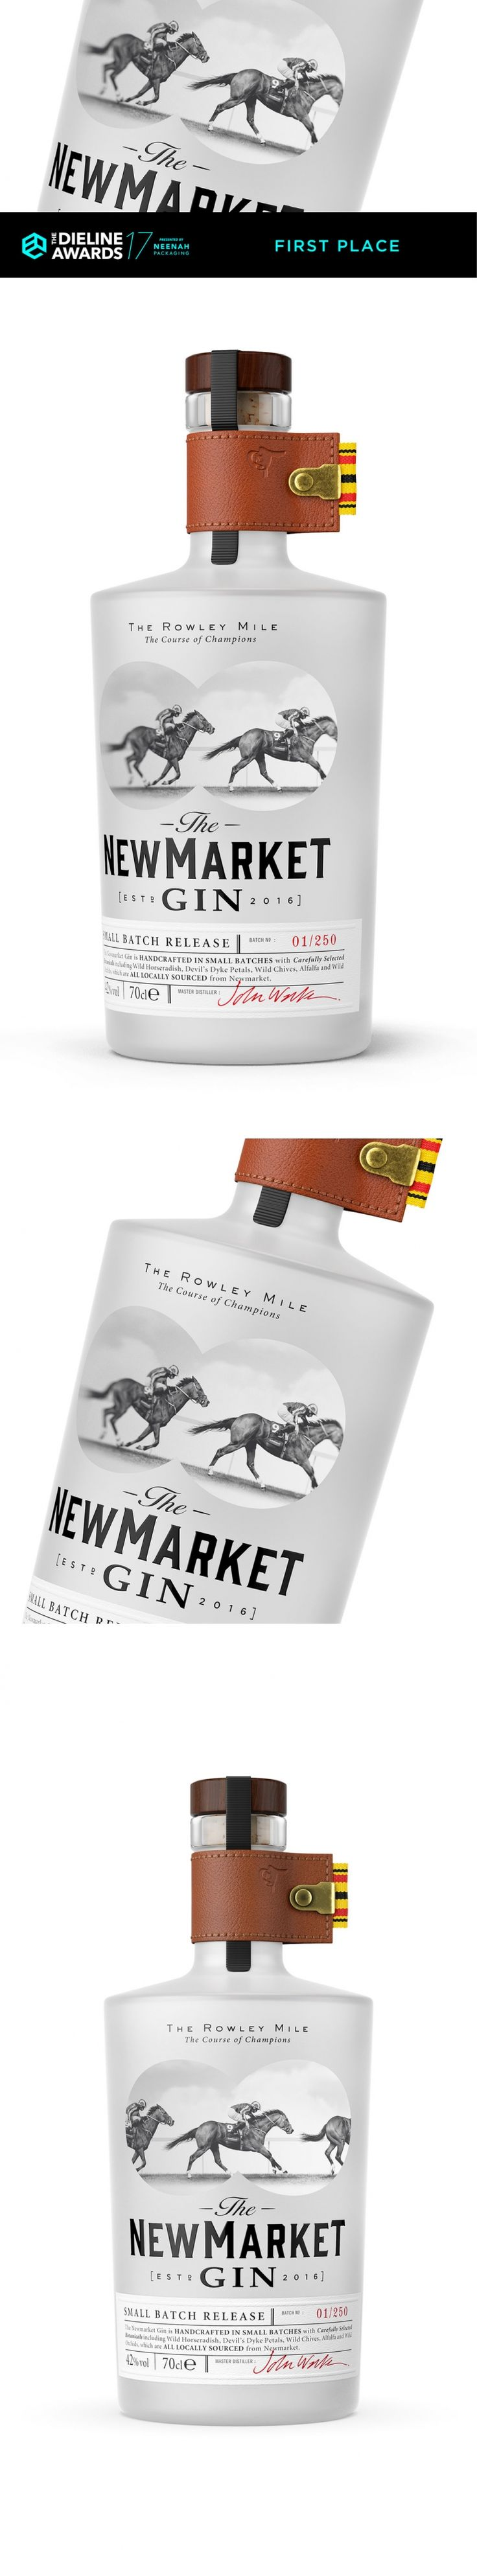 The Dieline Awards 2017: The Newmarket Gin — The Dieline | Packaging & Branding Design & Innovation News